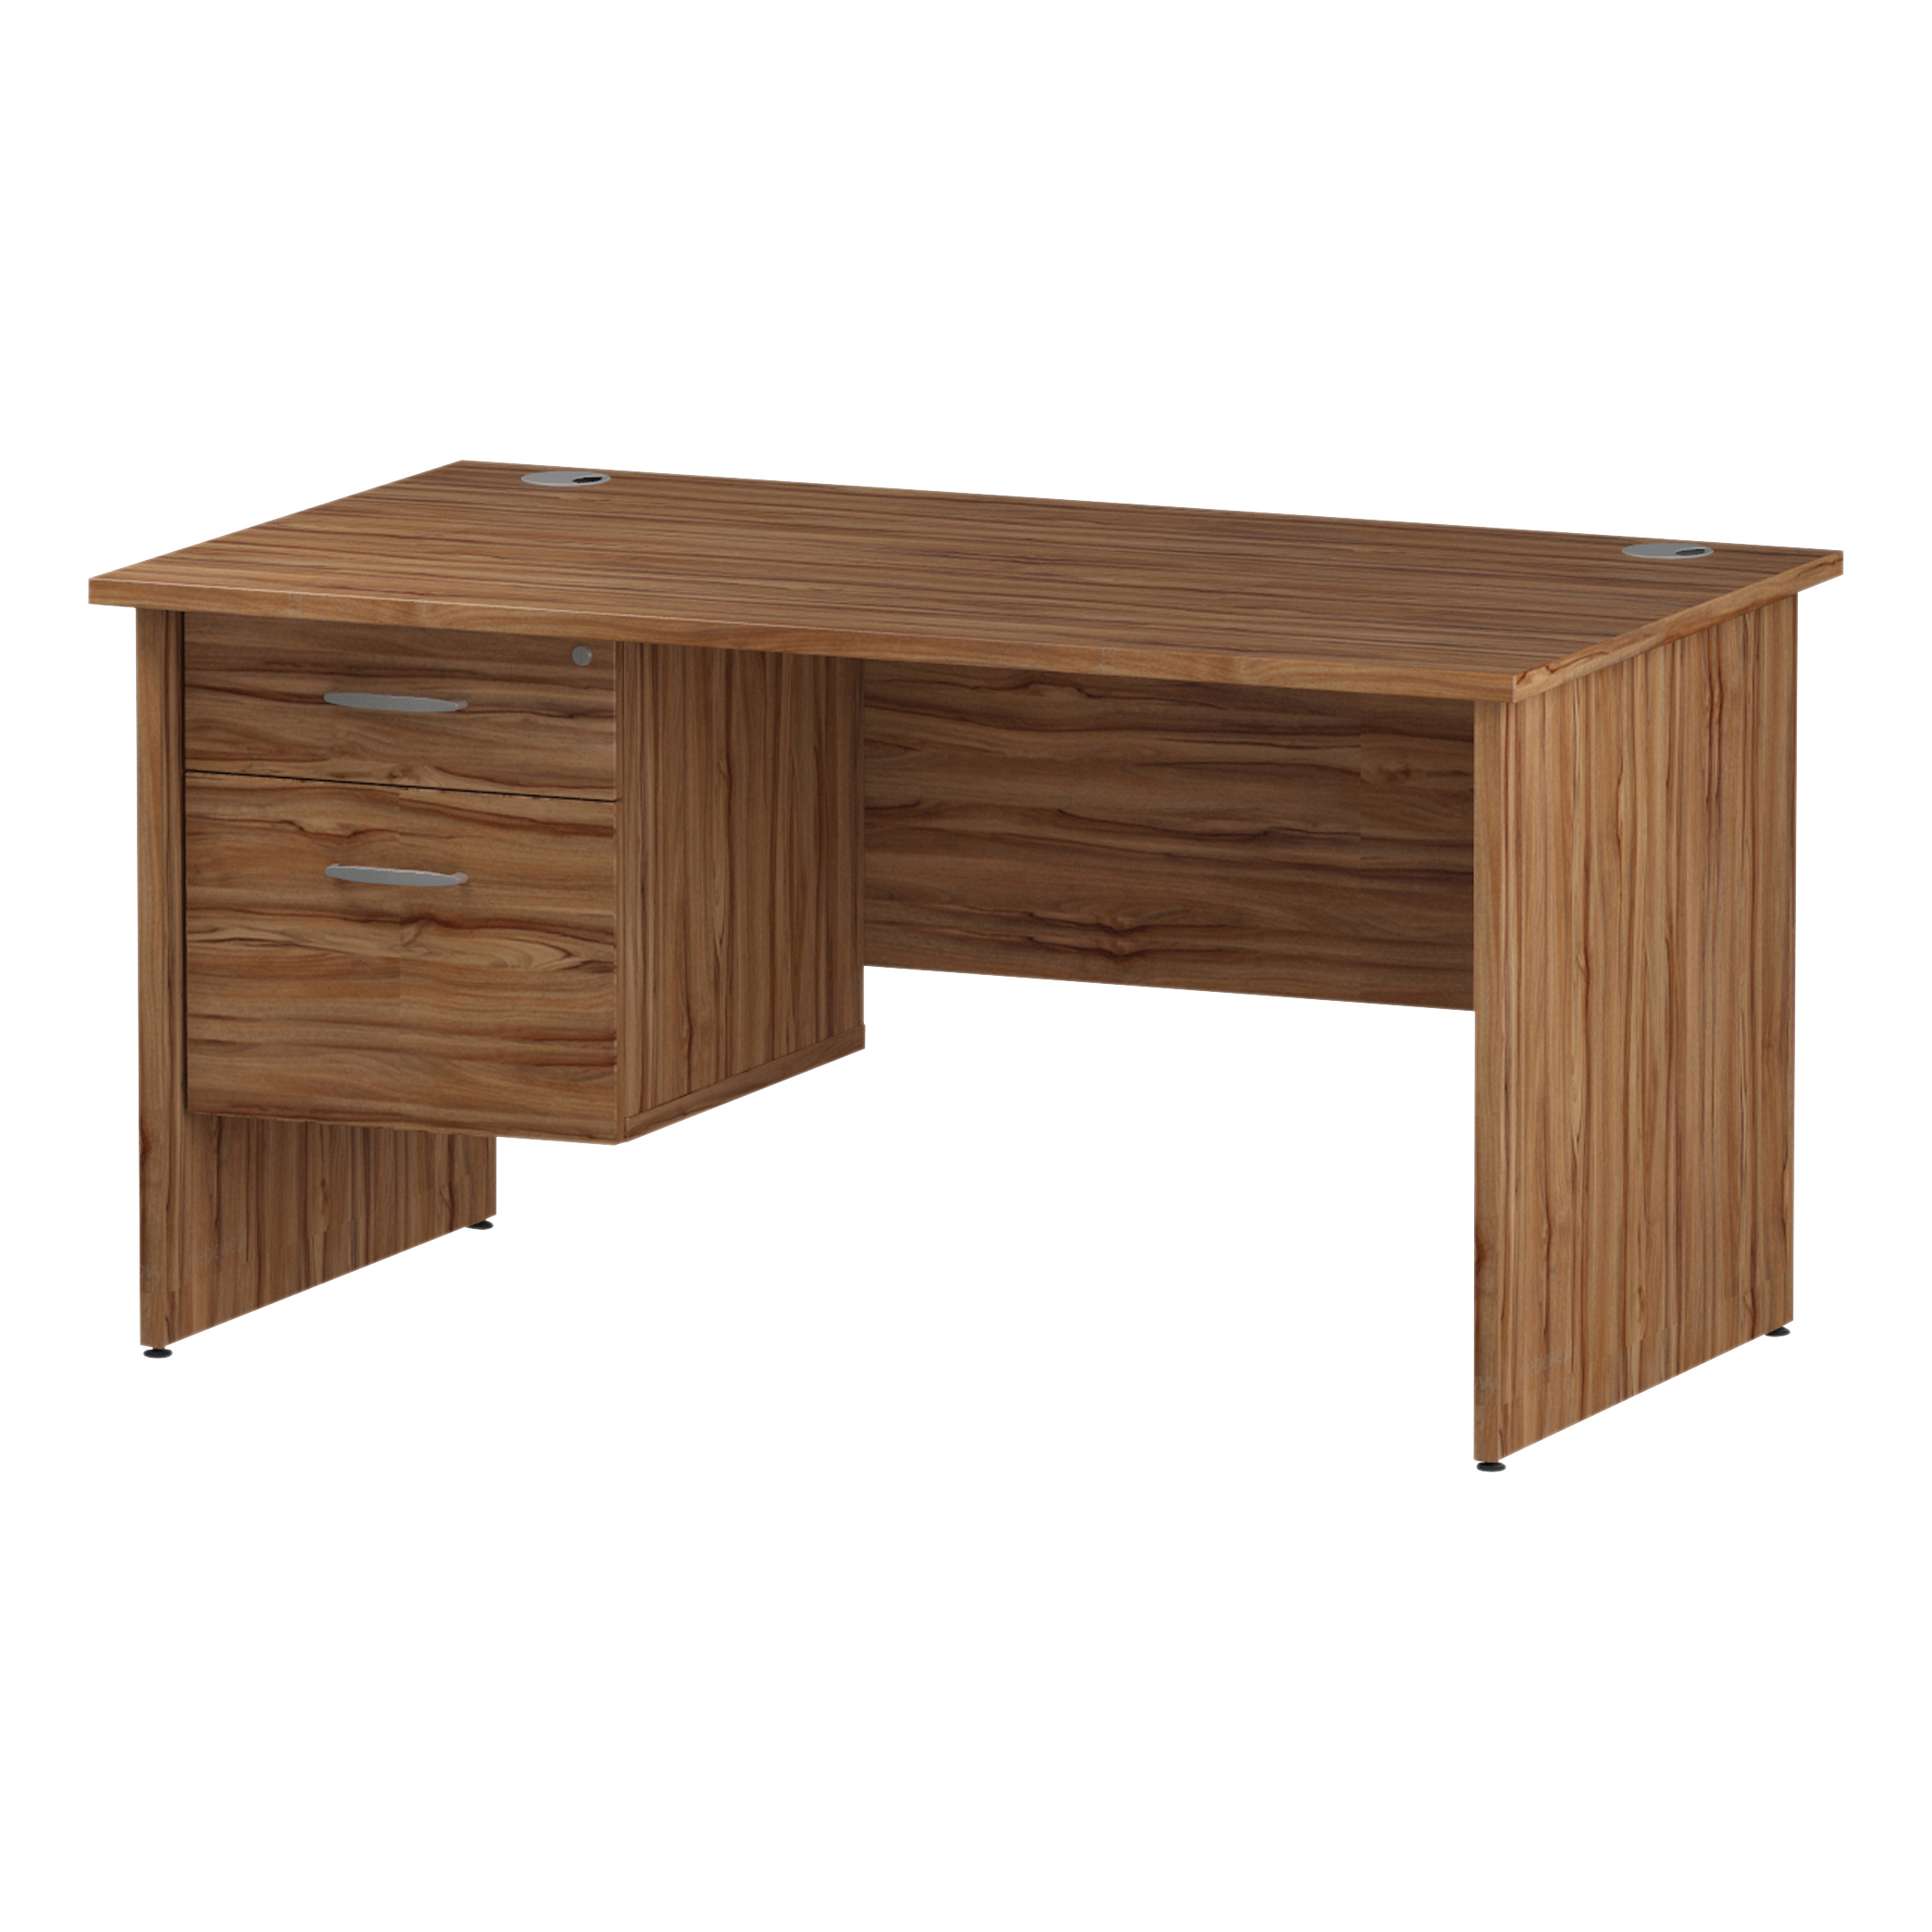 Trexus Rectangular Desk Panel End Leg 1400x800mm Fixed Pedestal 2 Drawers Walnut Ref I001970